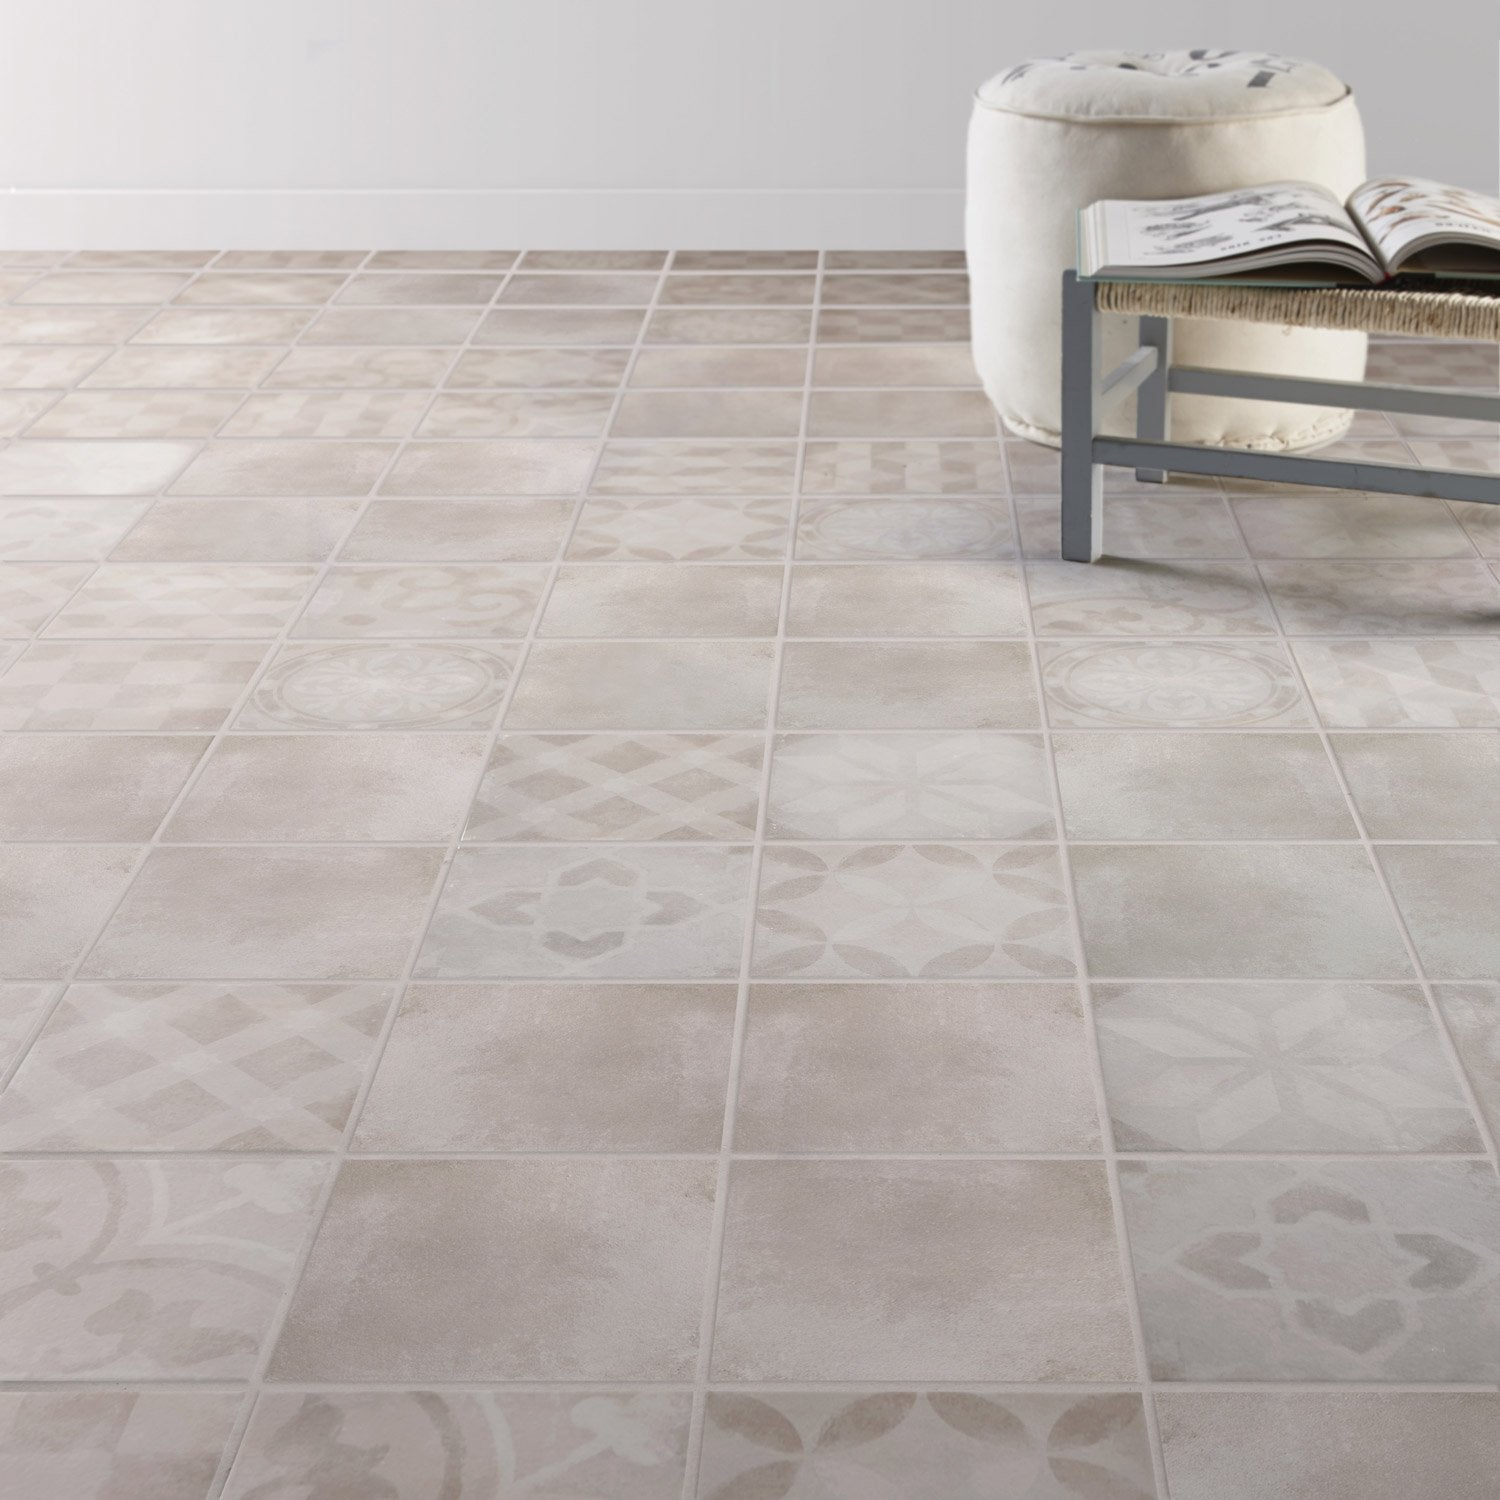 Carrelage leroy merlin gris for Carrelage sol gris clair